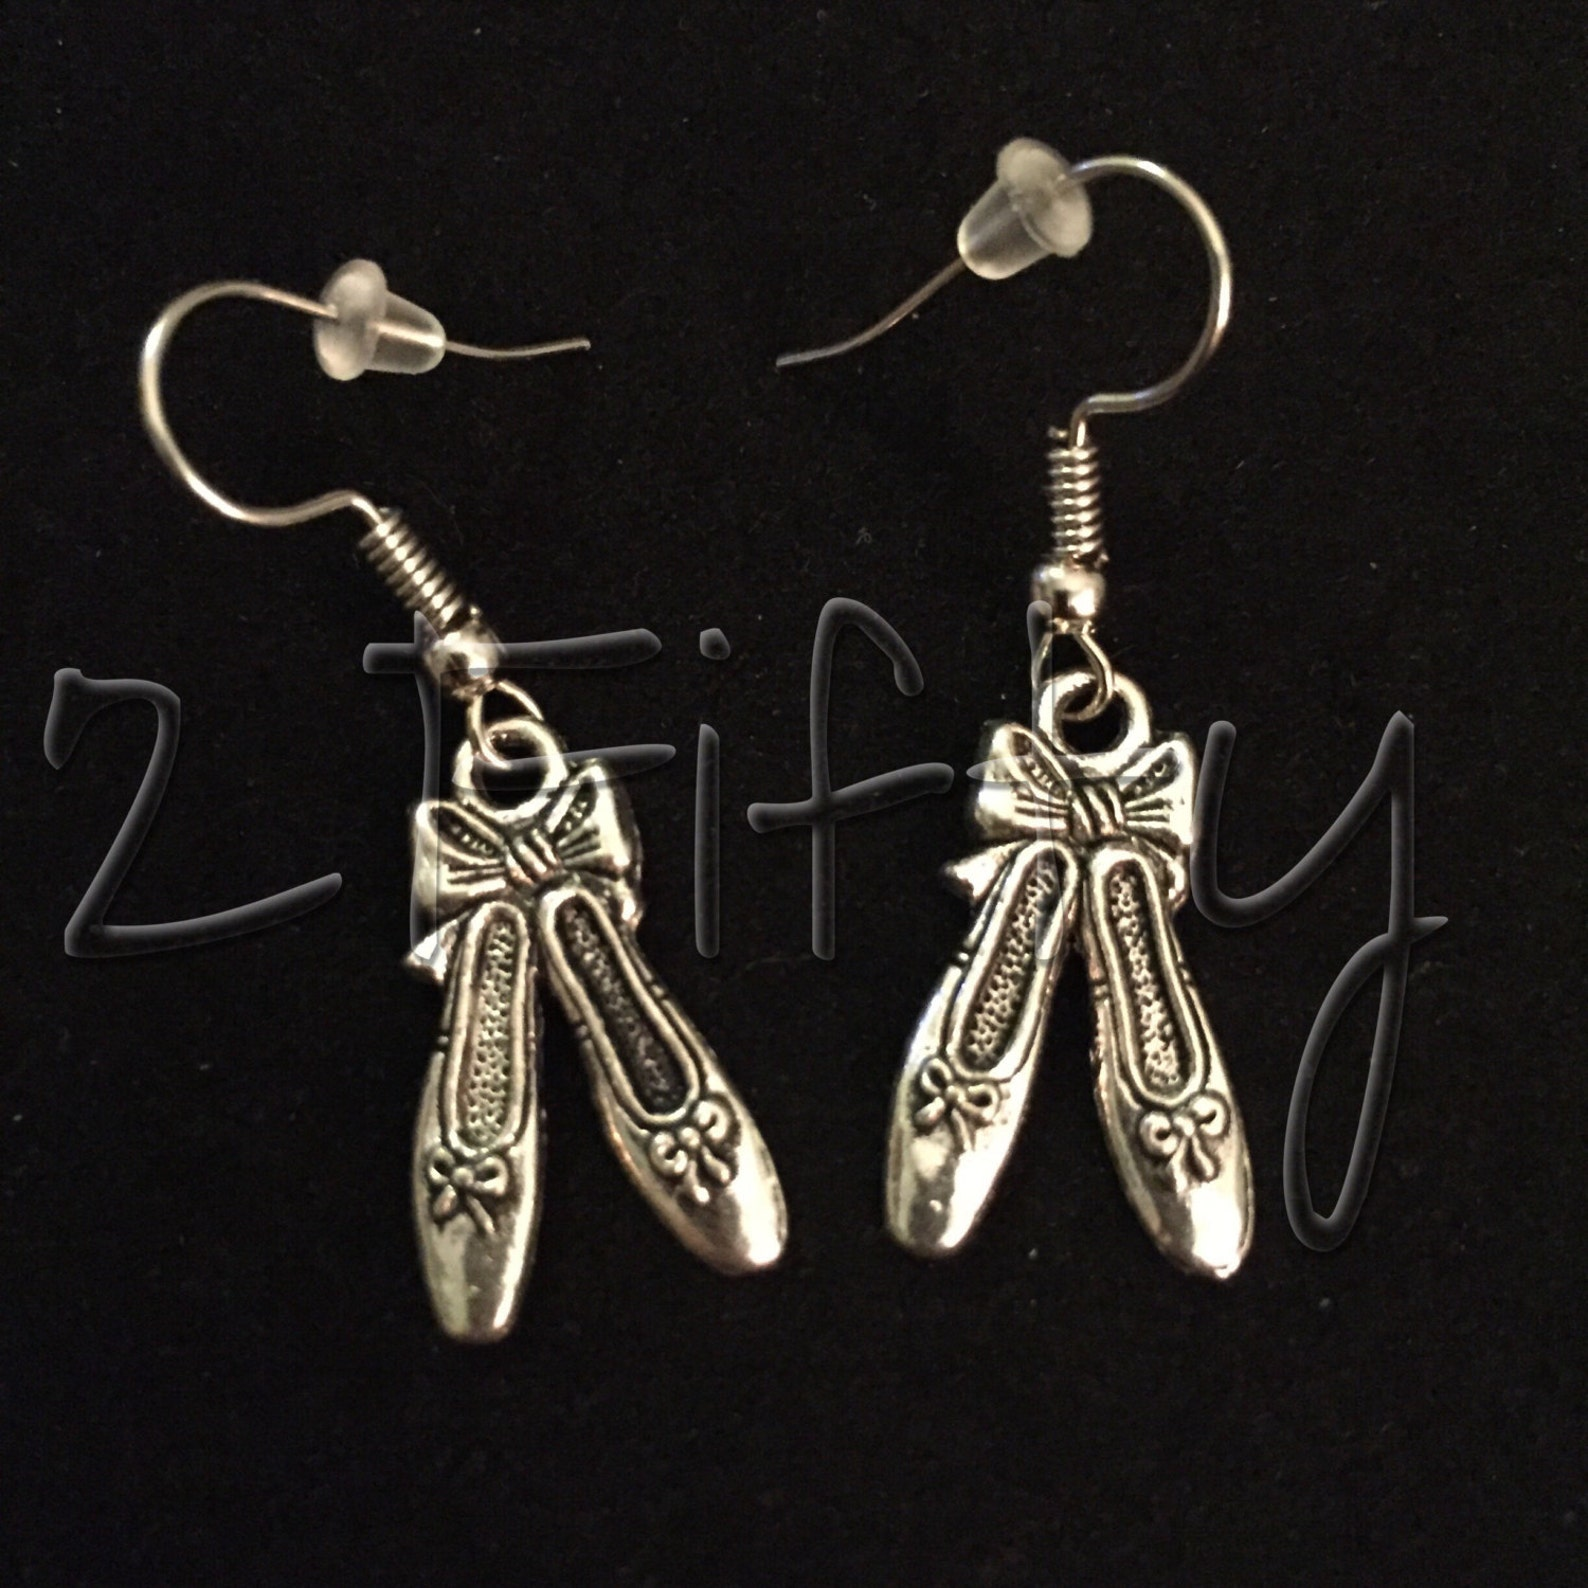 ballet dance shoes nickel free hook earrings